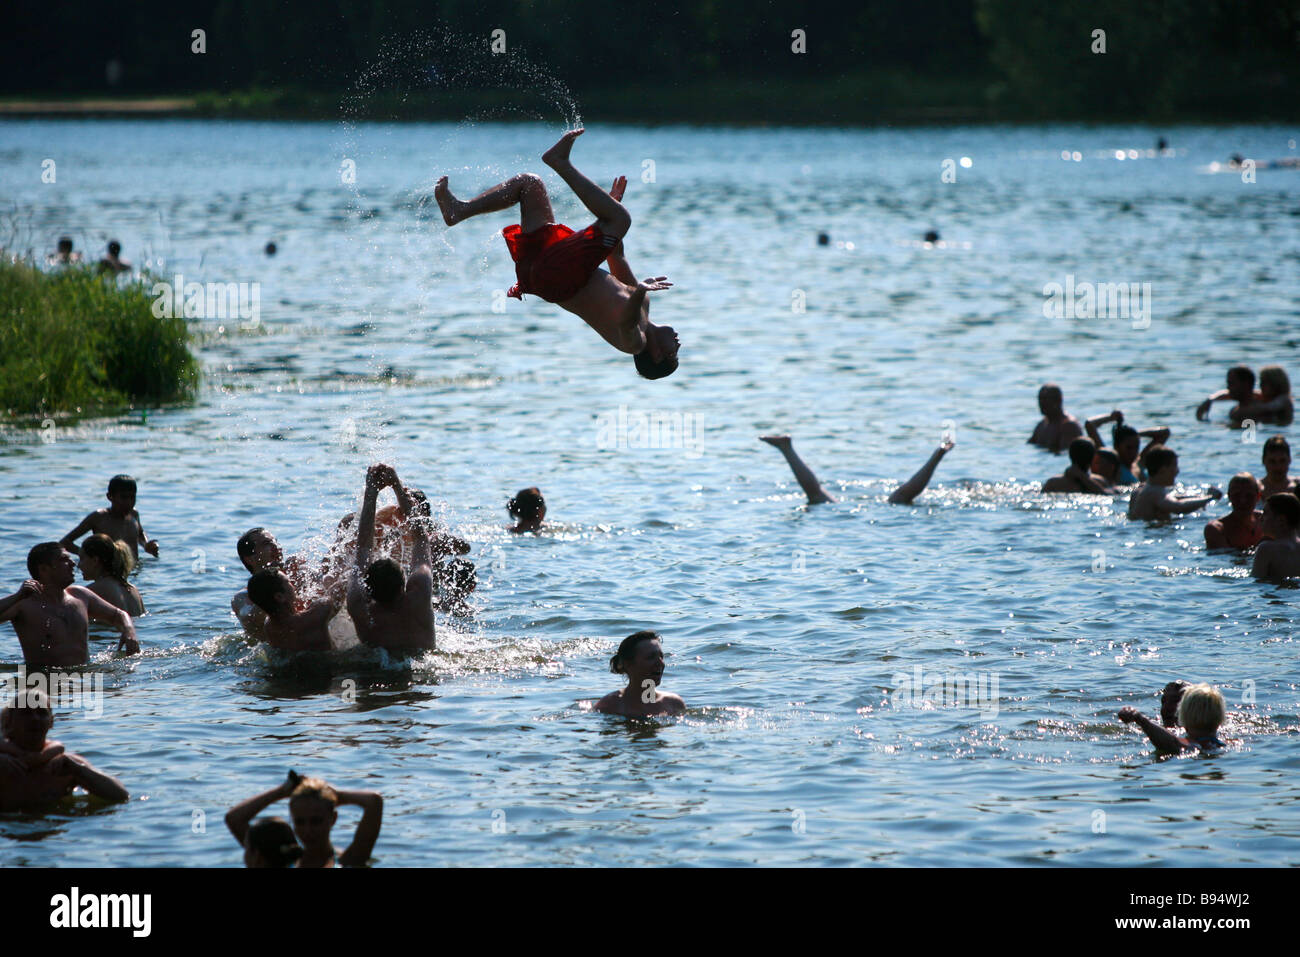 Stunt swimming in a lake near Moscow - Stock Image